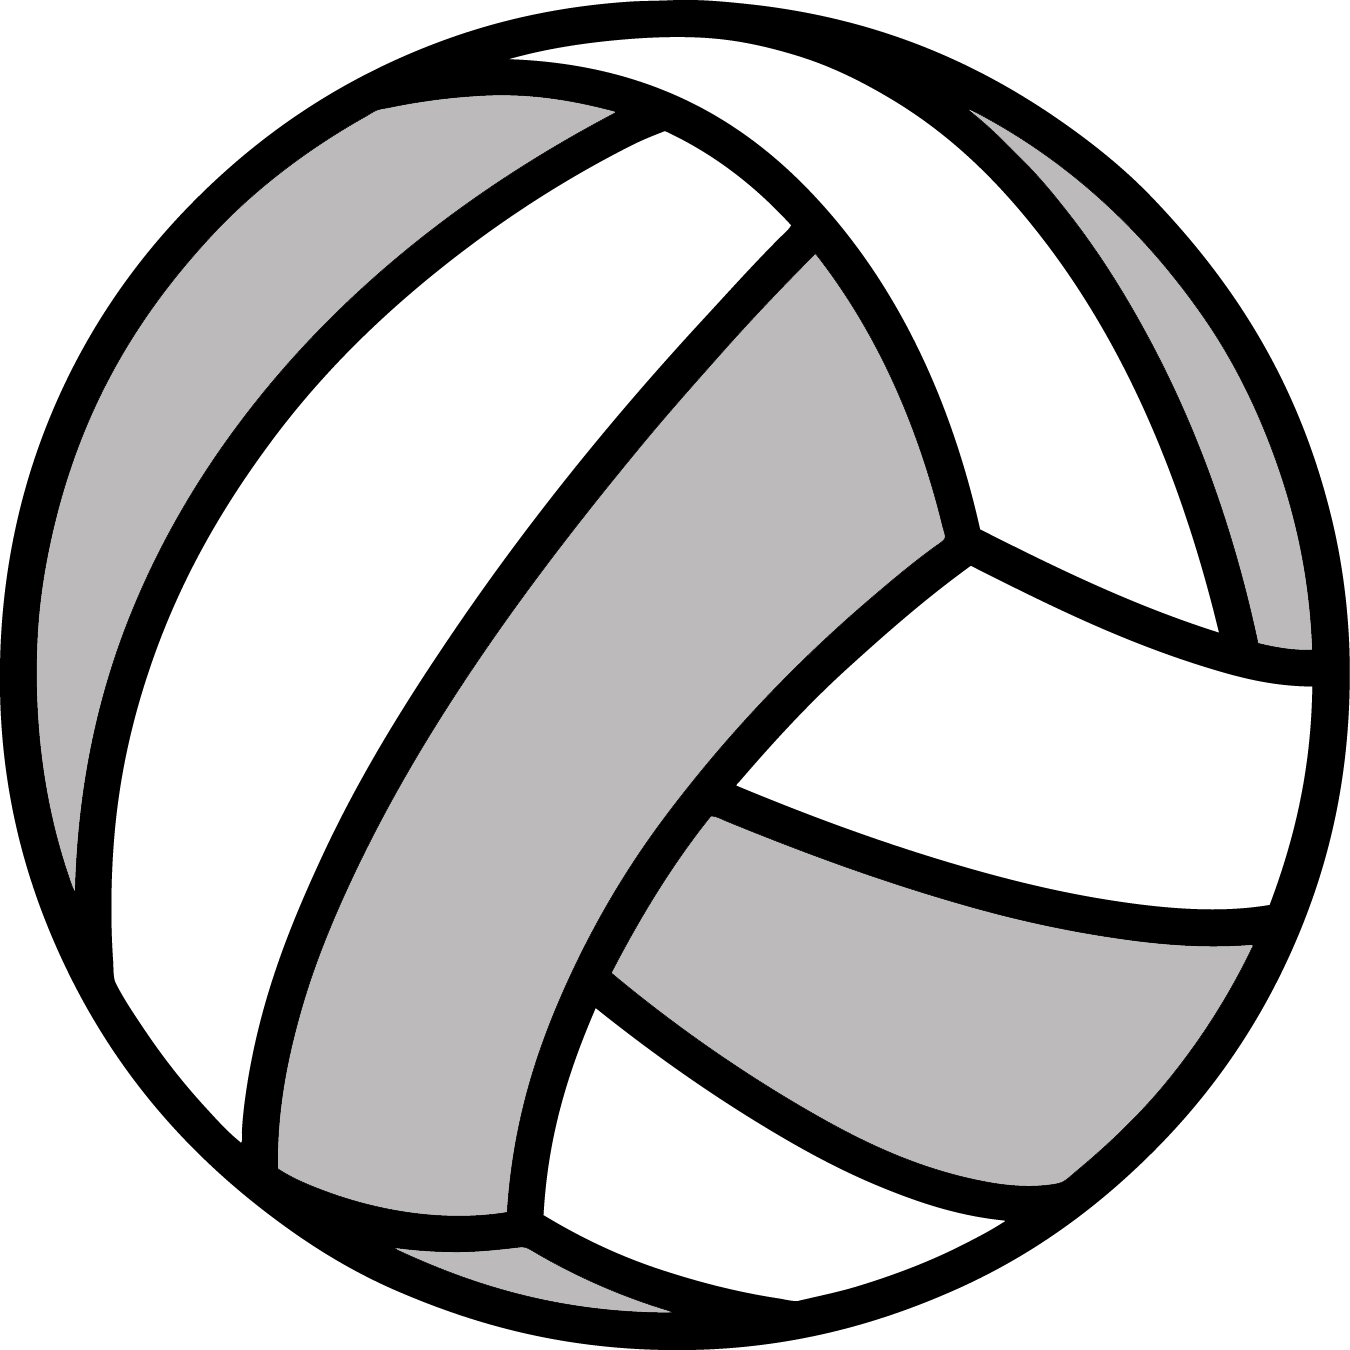 Volleyball transparent background clipart clipart free library Volleyball PNG Images Transparent Free Download | PNGMart.com clipart free library